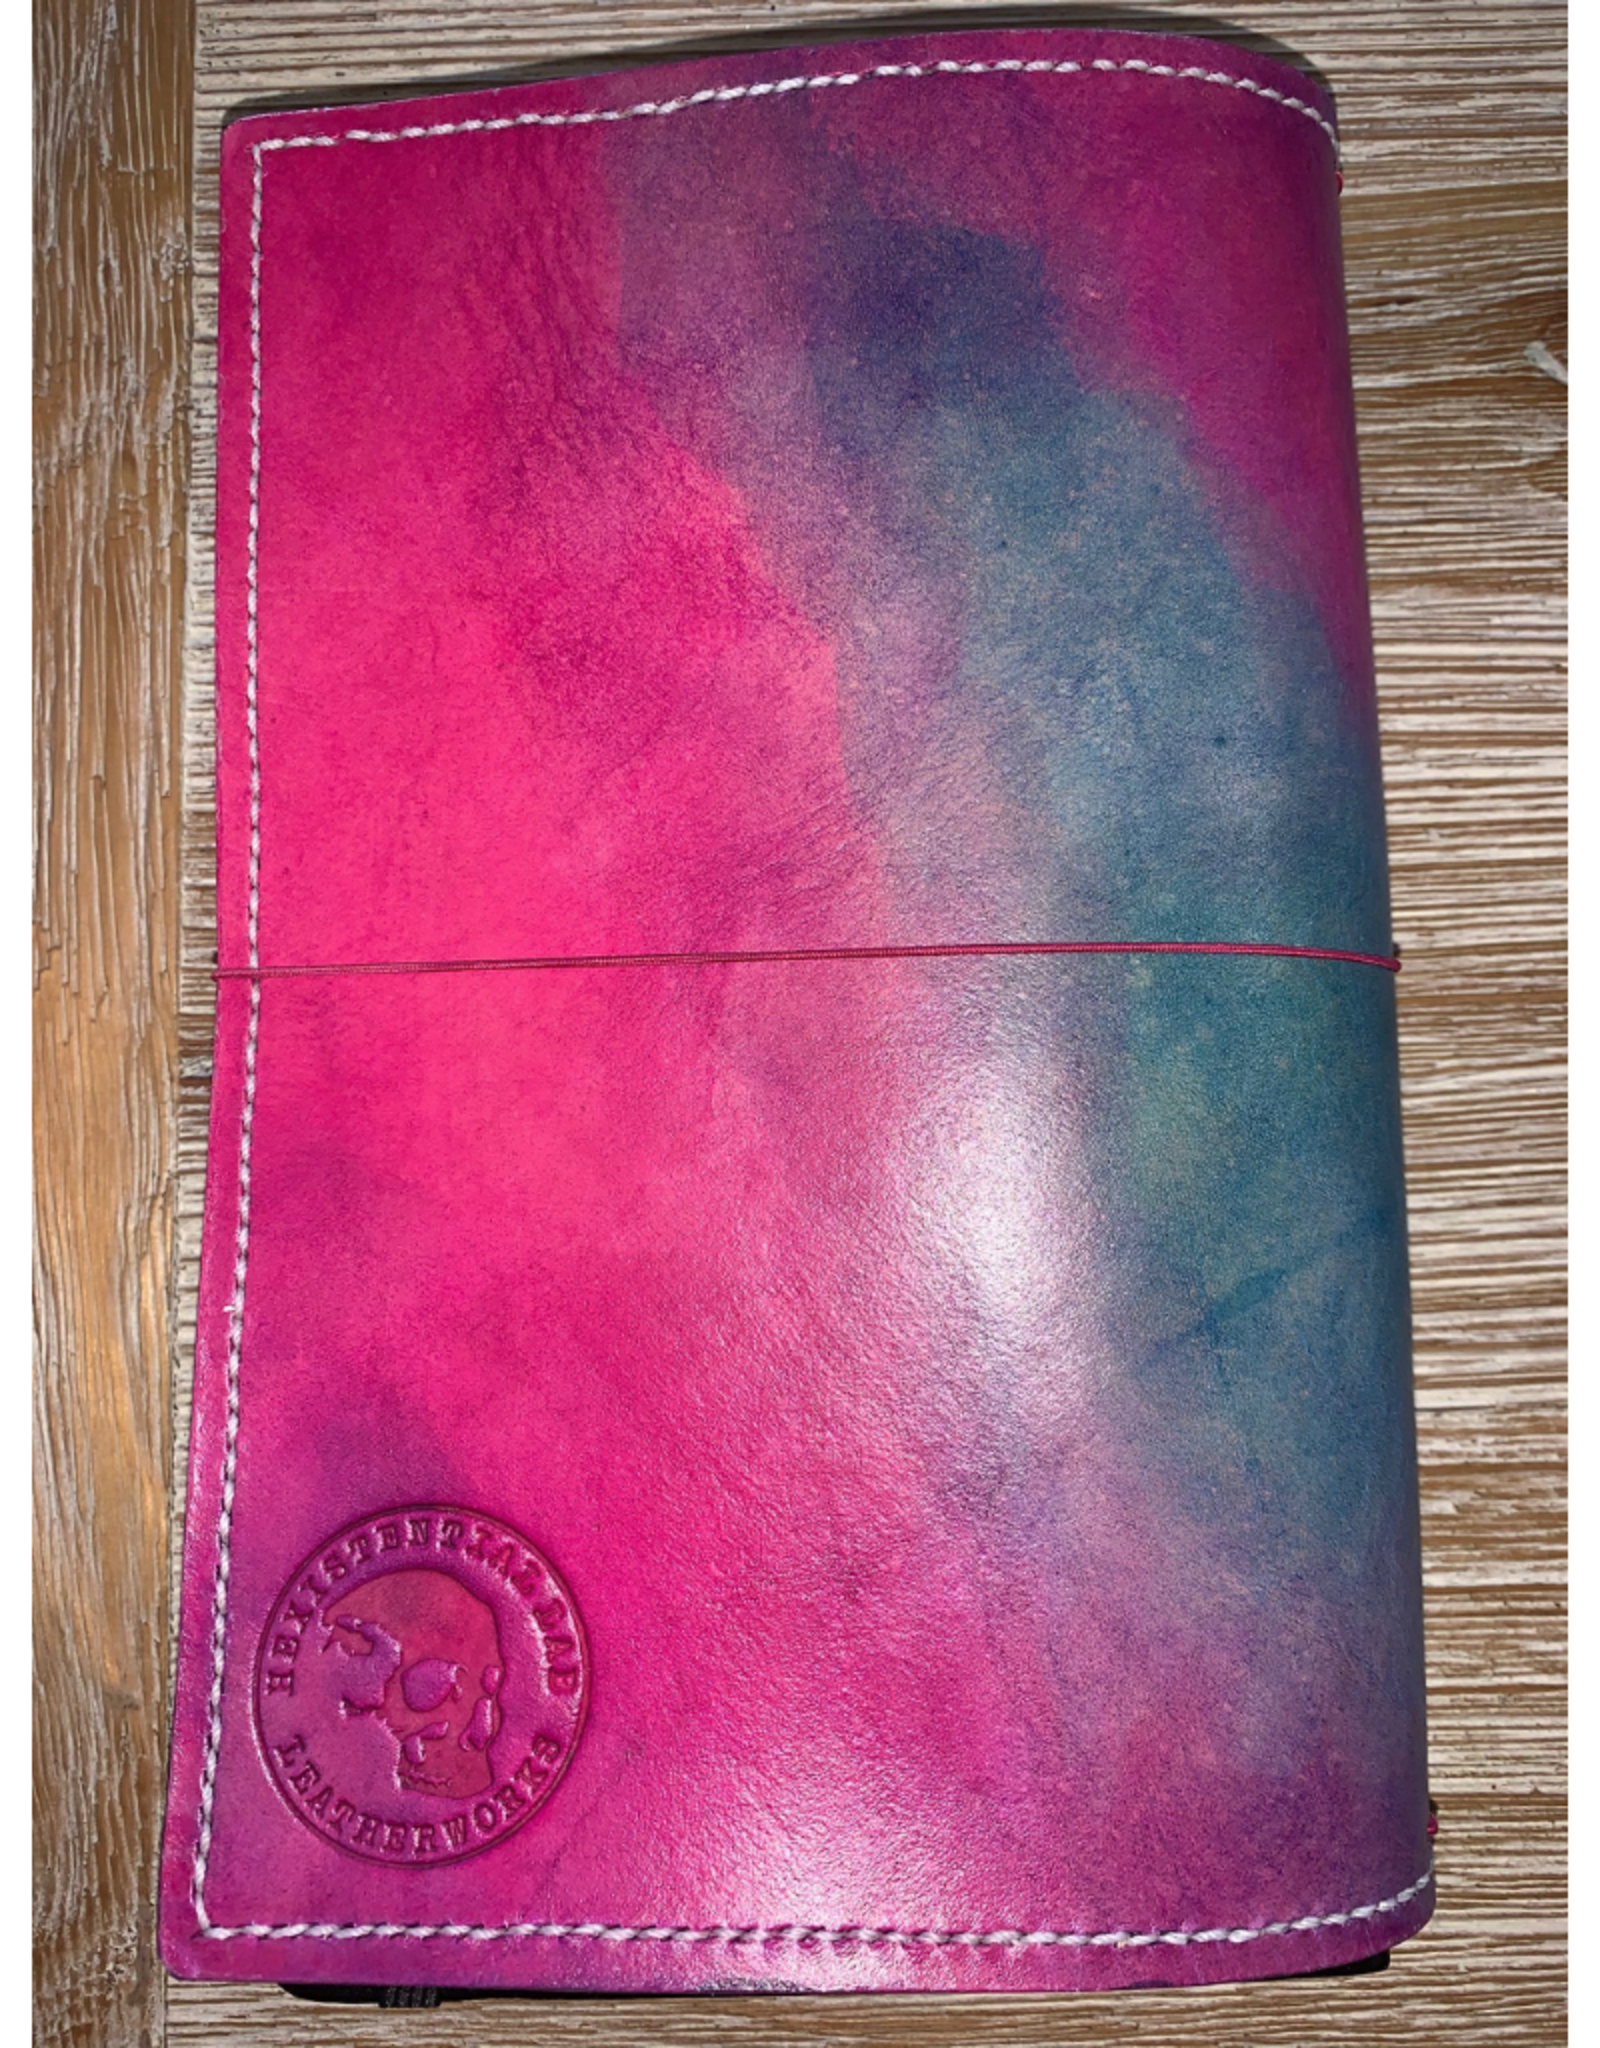 One of a kind leather journal